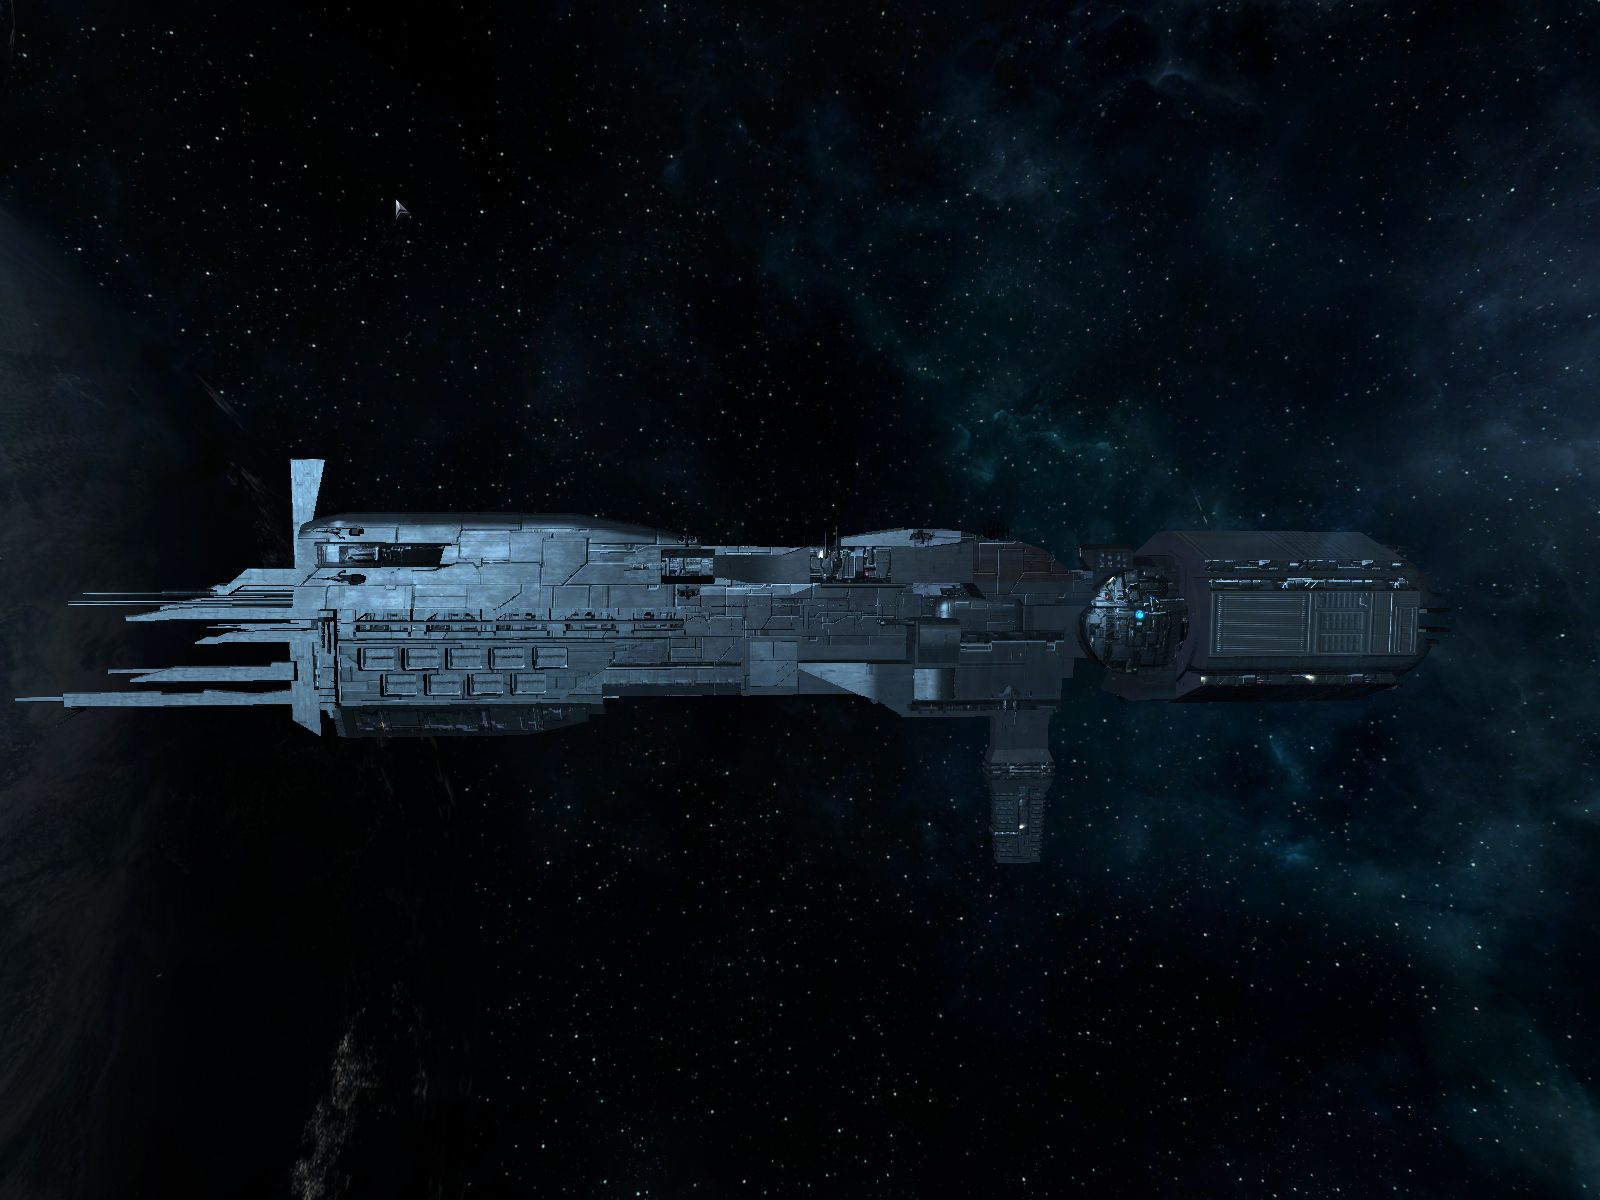 USS Sulaco from Aliens. Probably the coolest spaceship ...